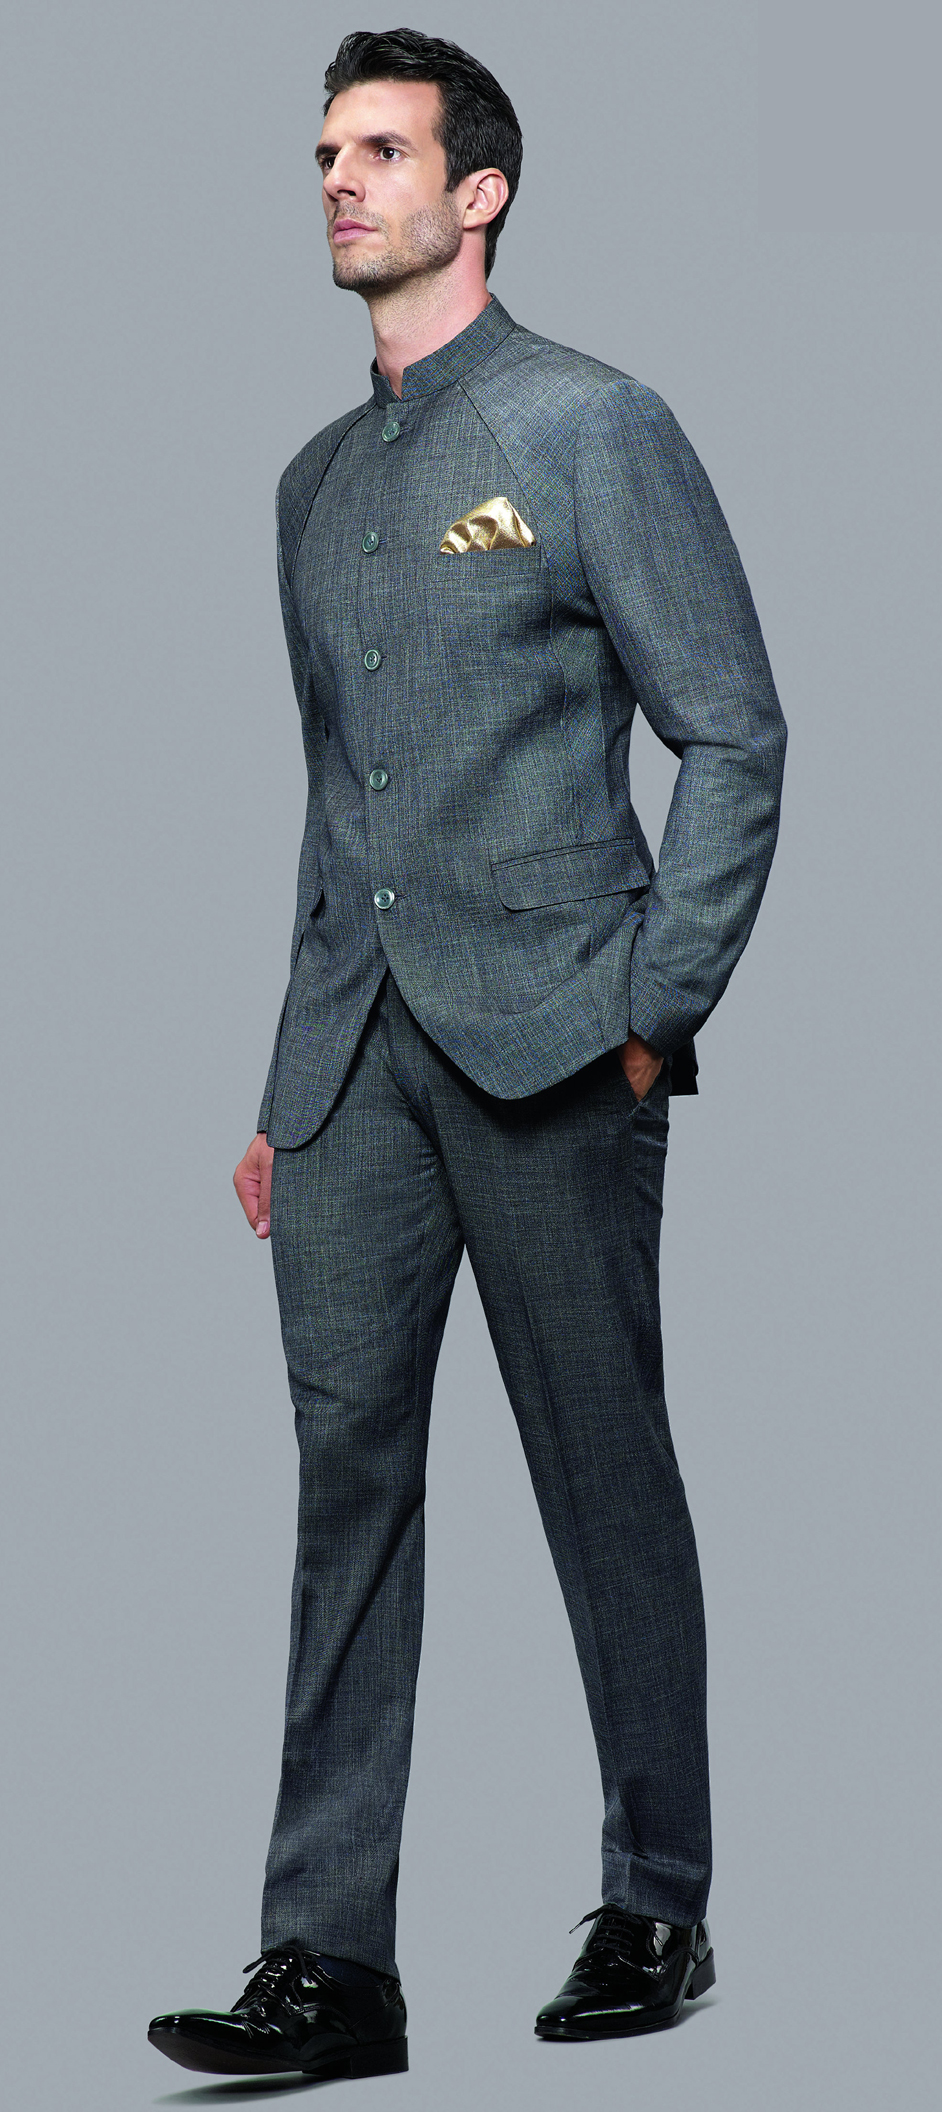 502816: Black and Grey color family stitched Jodhpuri Suit .